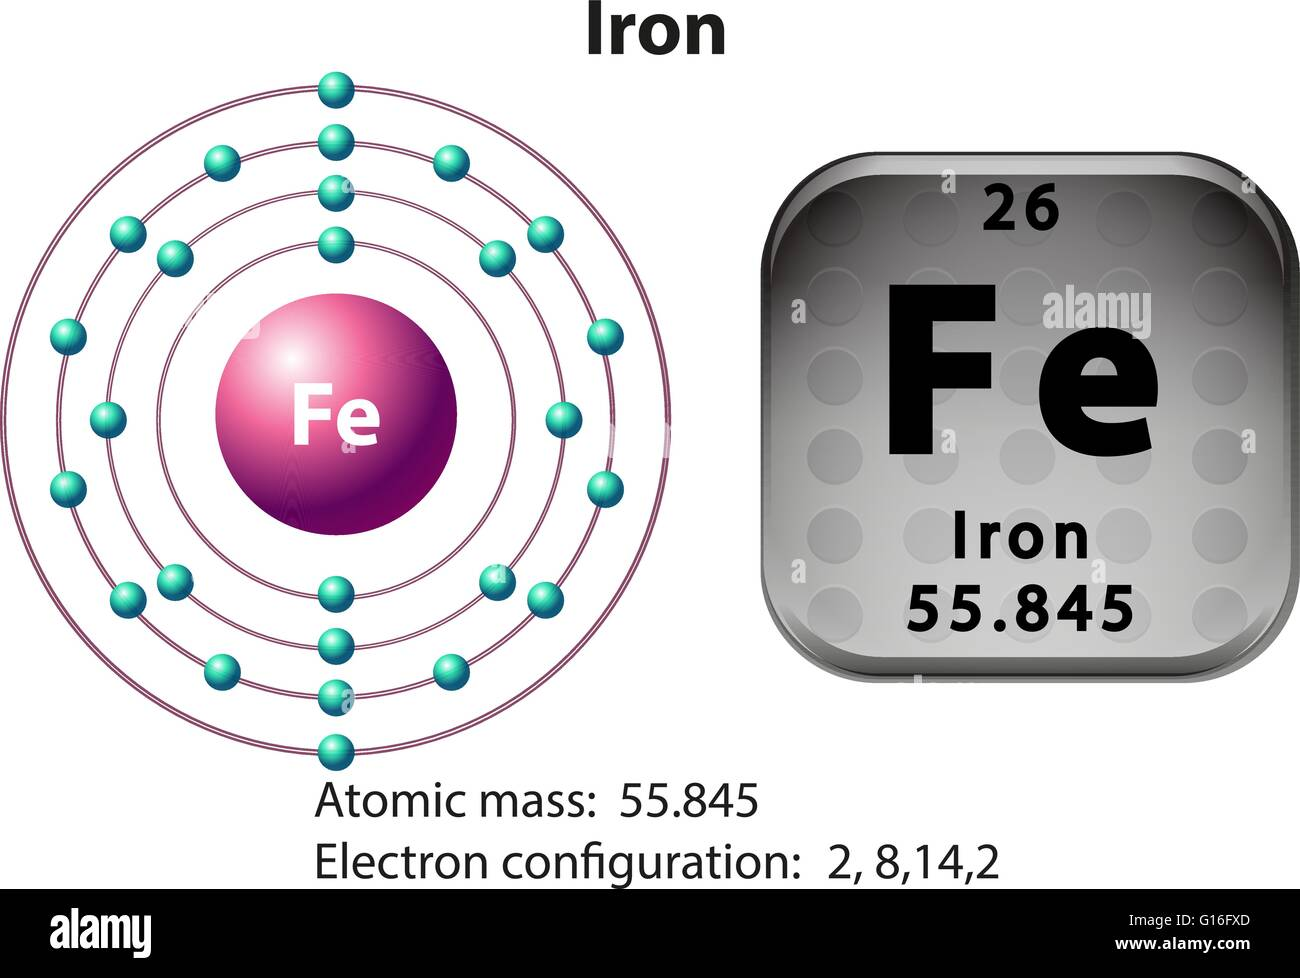 Symbol And Electron Diagram For Iron Illustration Stock Vector Art